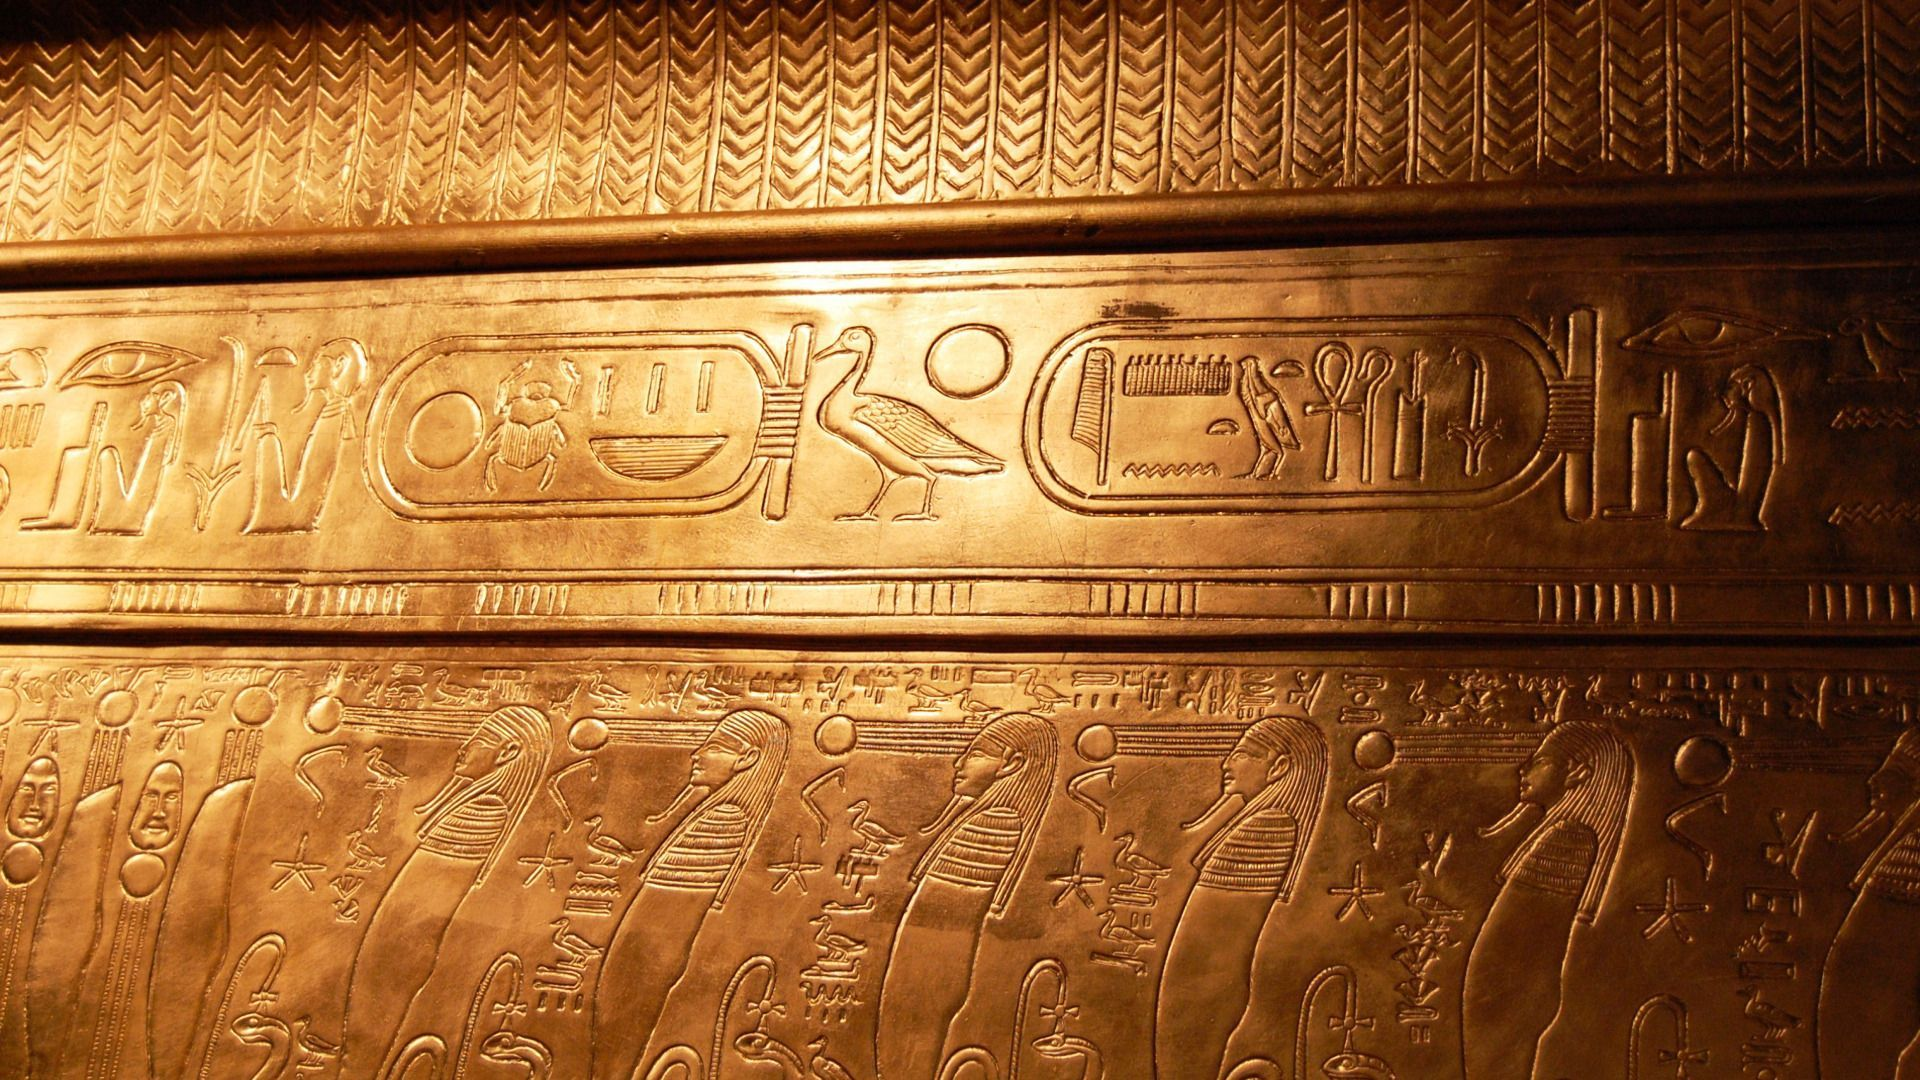 1920x1080 Egyptian Hieroglyphics Backgrounds Free Download | PixelsTalk.Net